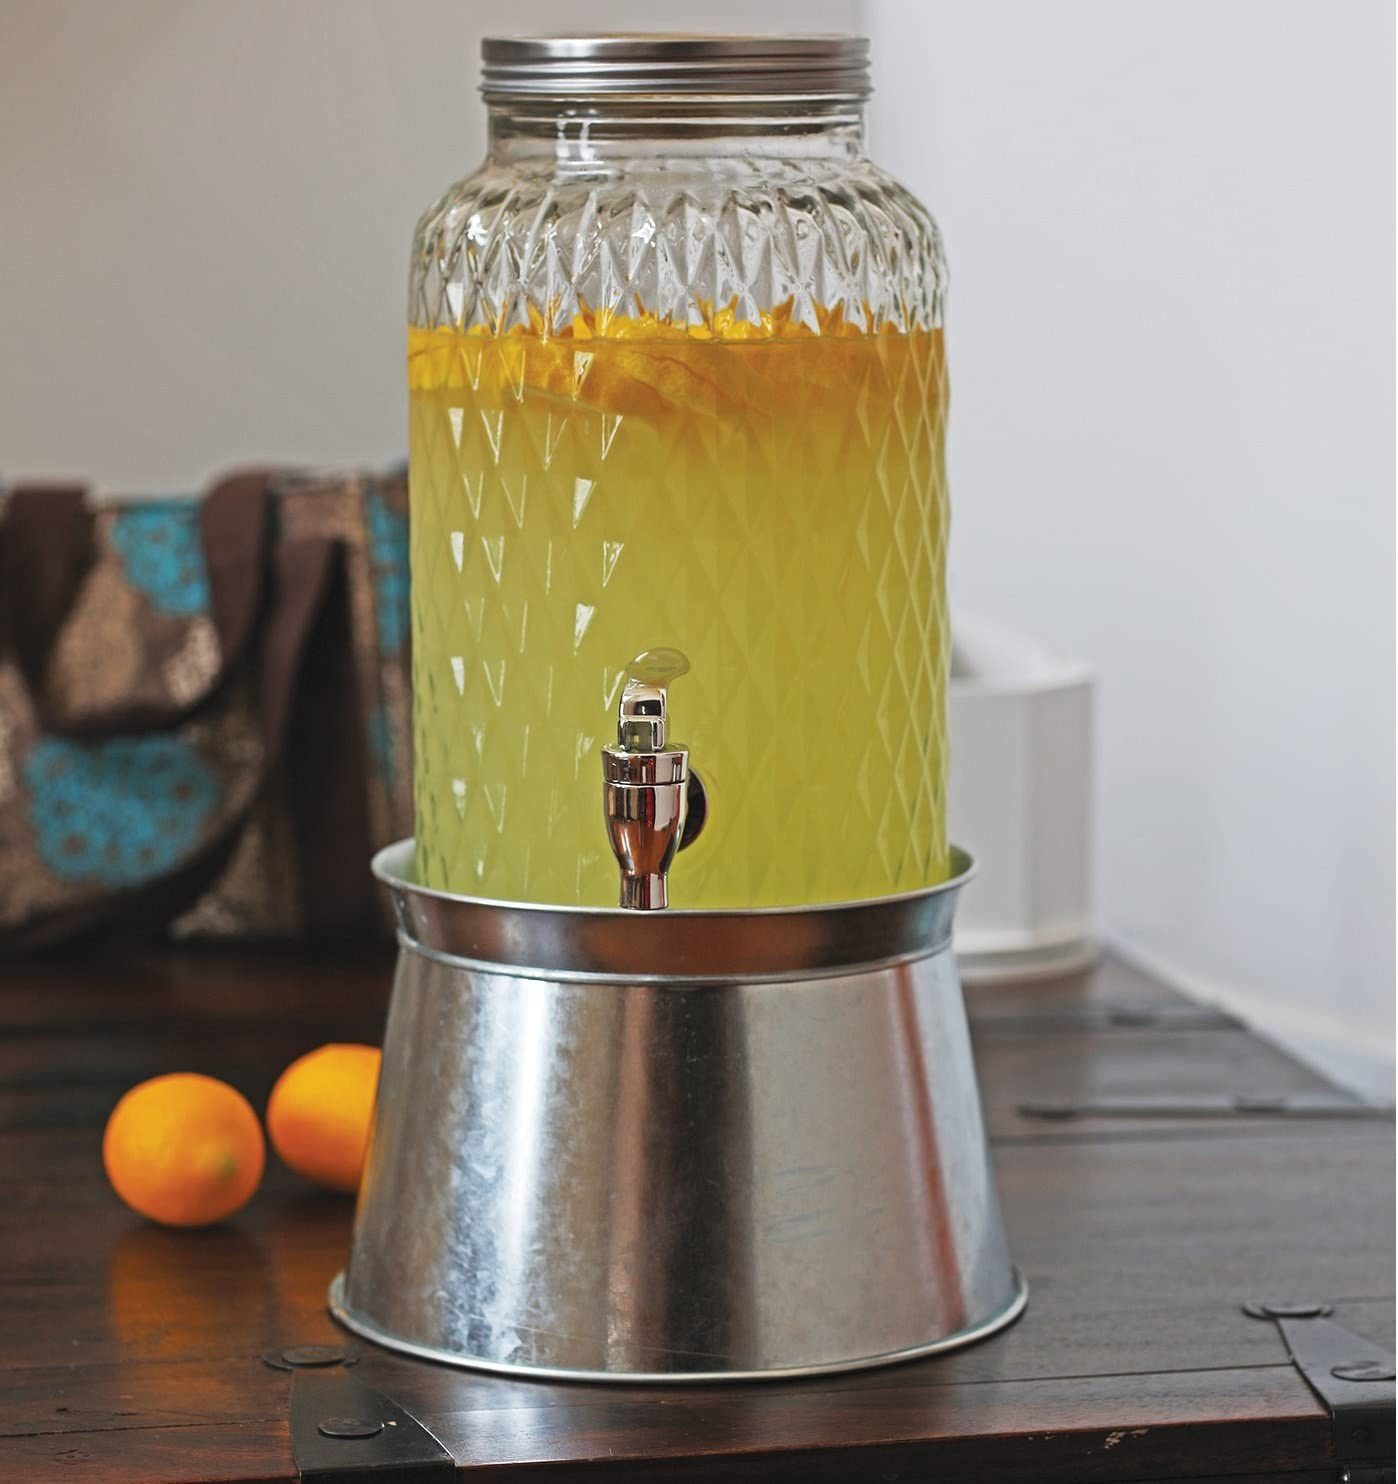 Circleware Treasure Beverage Dispenser with Stand and Metal Lid Sun Tea Jar with Spigot Entertainment Kitchen Glassware Water Pitcher for Kombucha Juice & Cold Drinks, 1.5 Gallon, Diamond